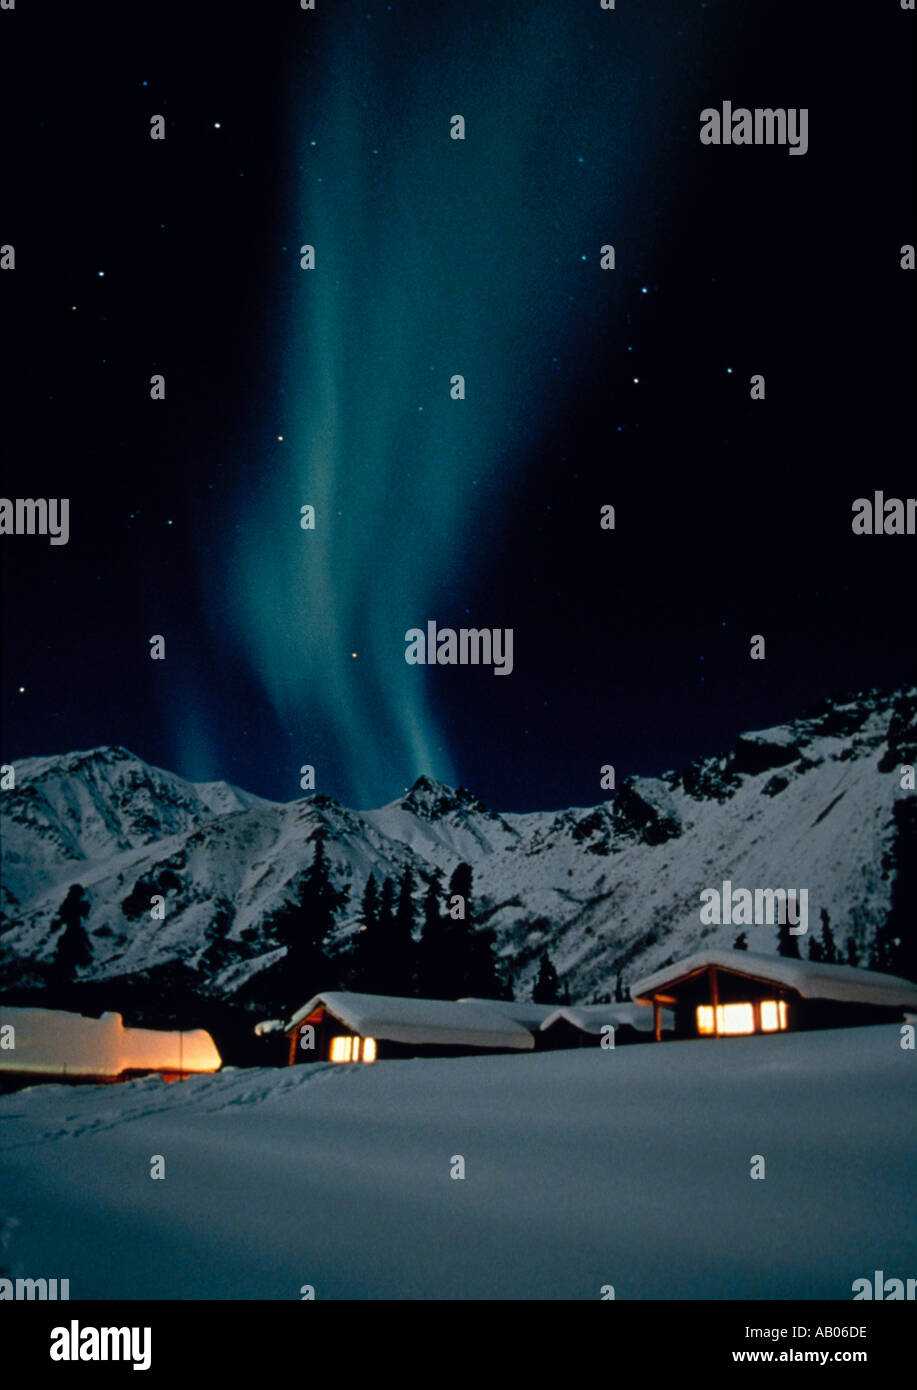 Aurora Borealis norther lights and cabins in the snow AK - Stock Image